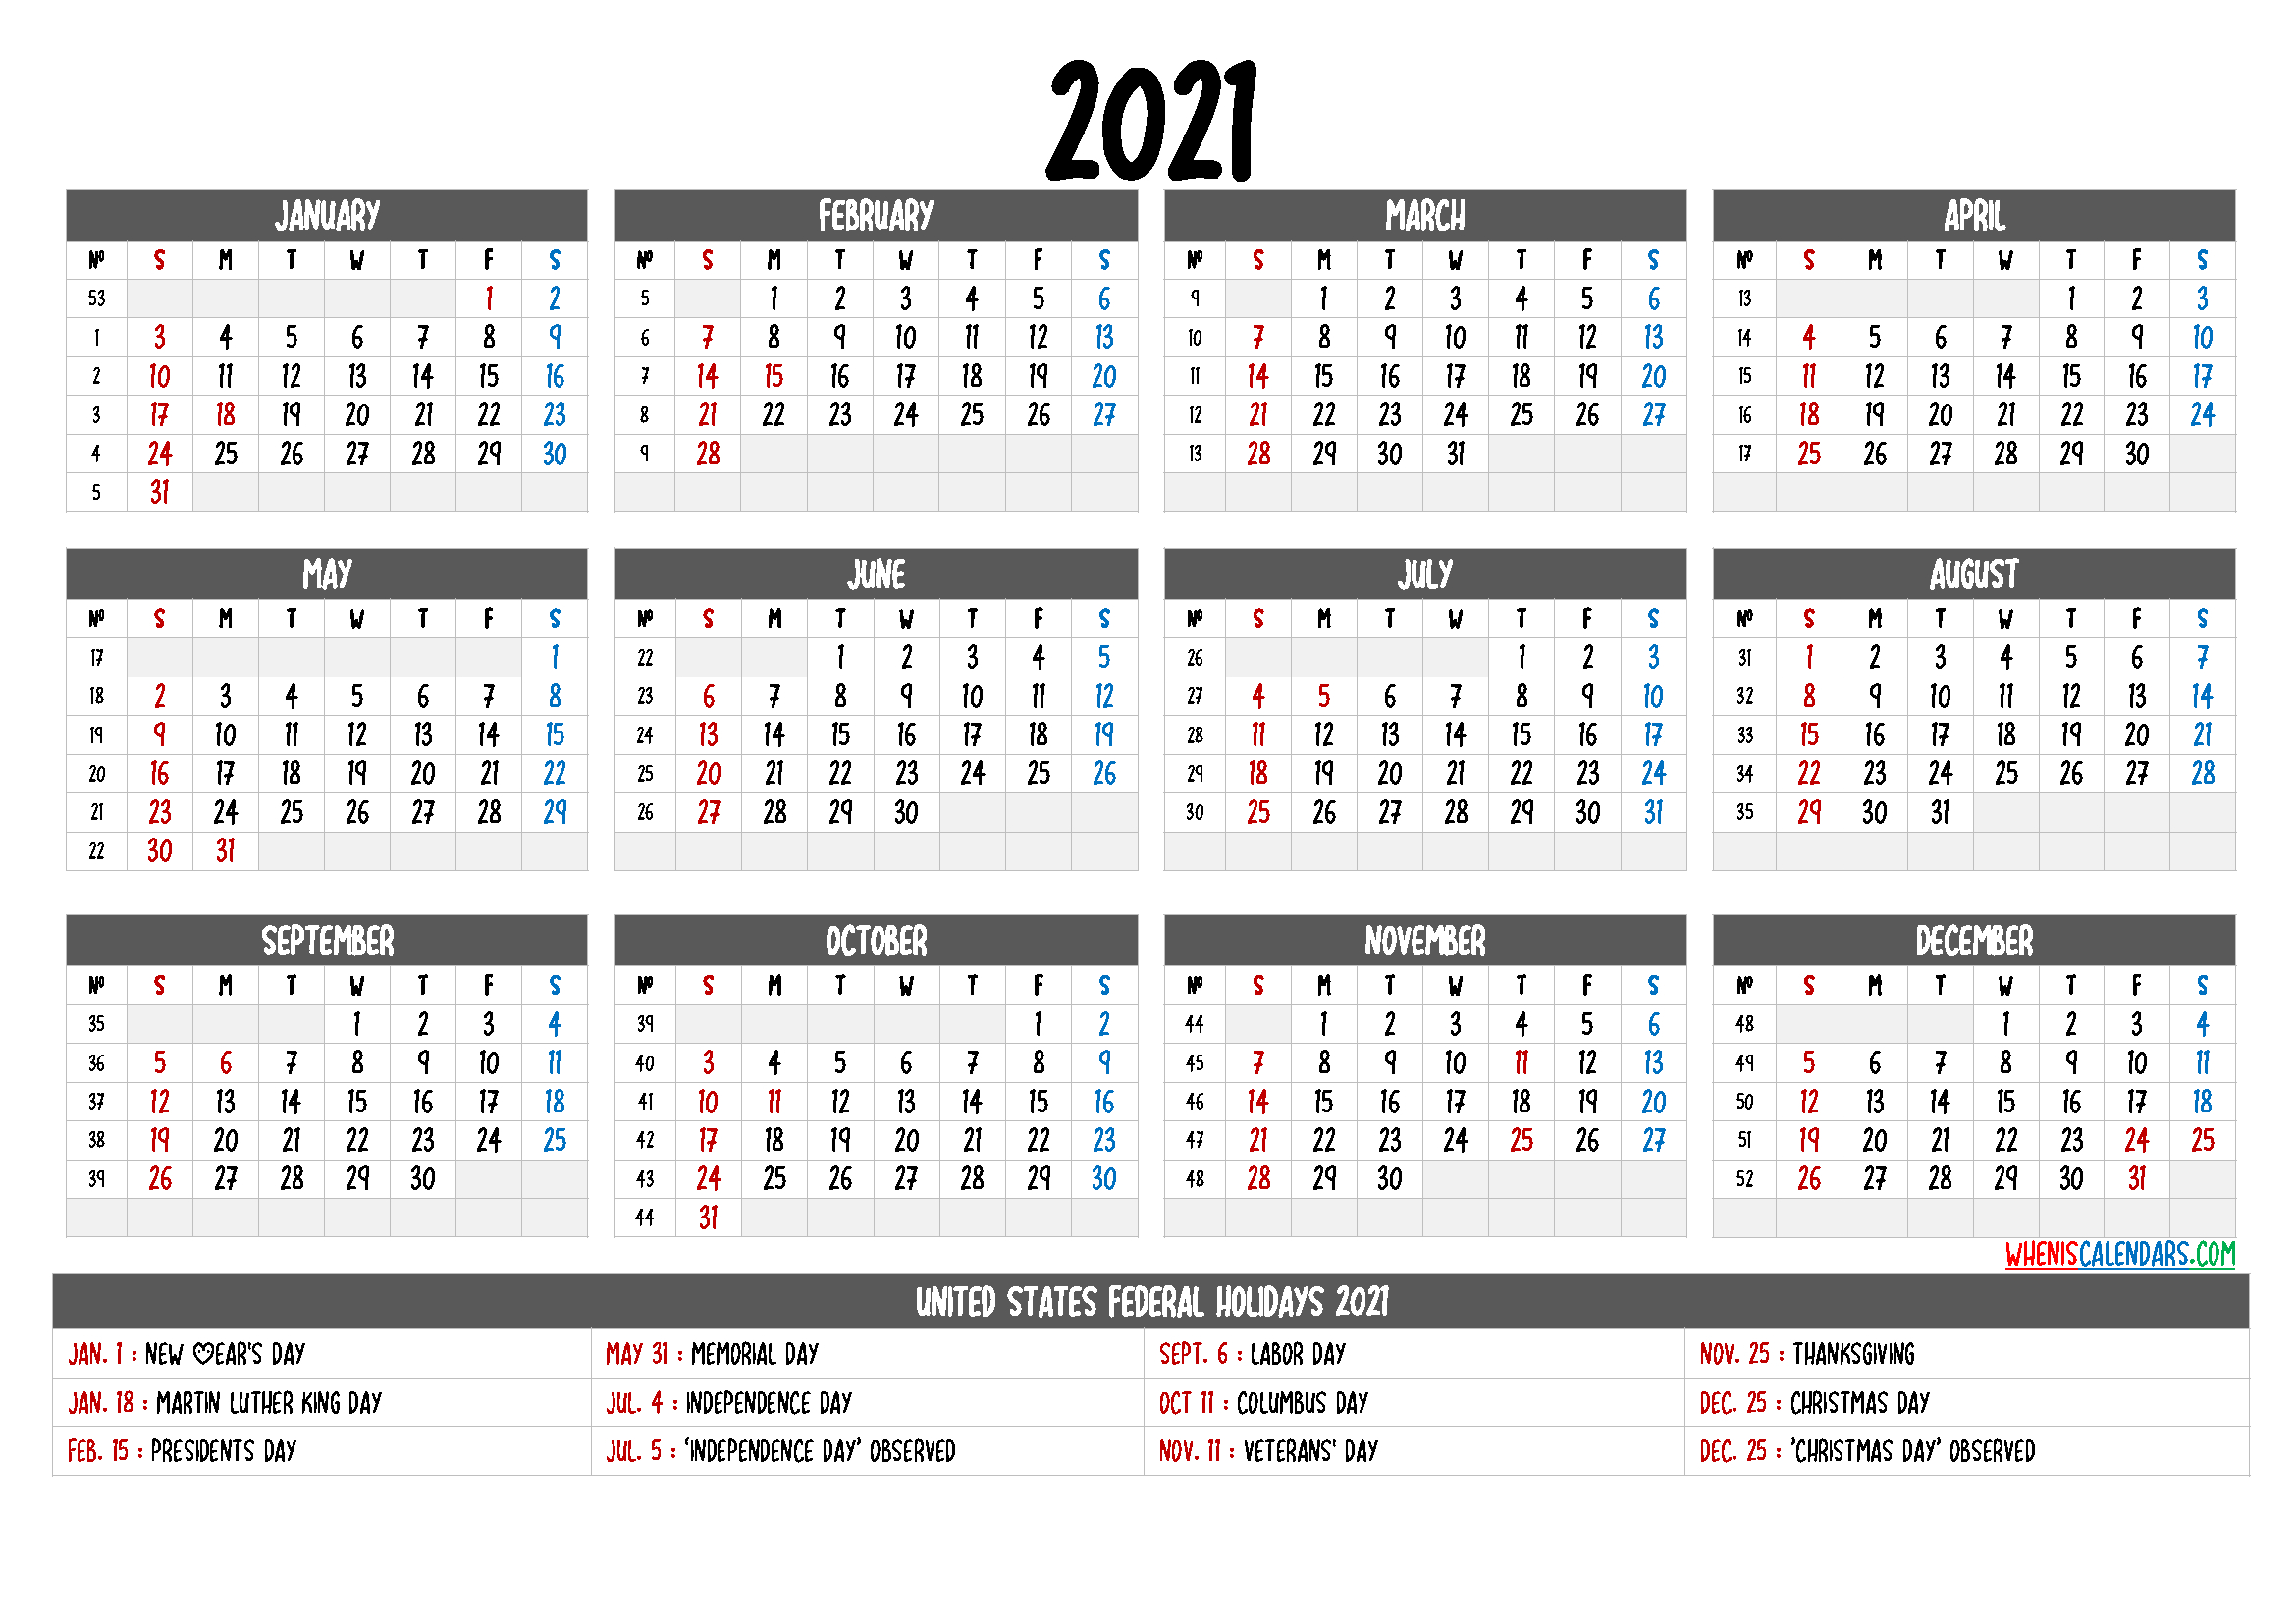 Free Printable Calendar 2021 With Holidays - 12 Templates inside 2021 Printable Calendar With Boxes Yearly